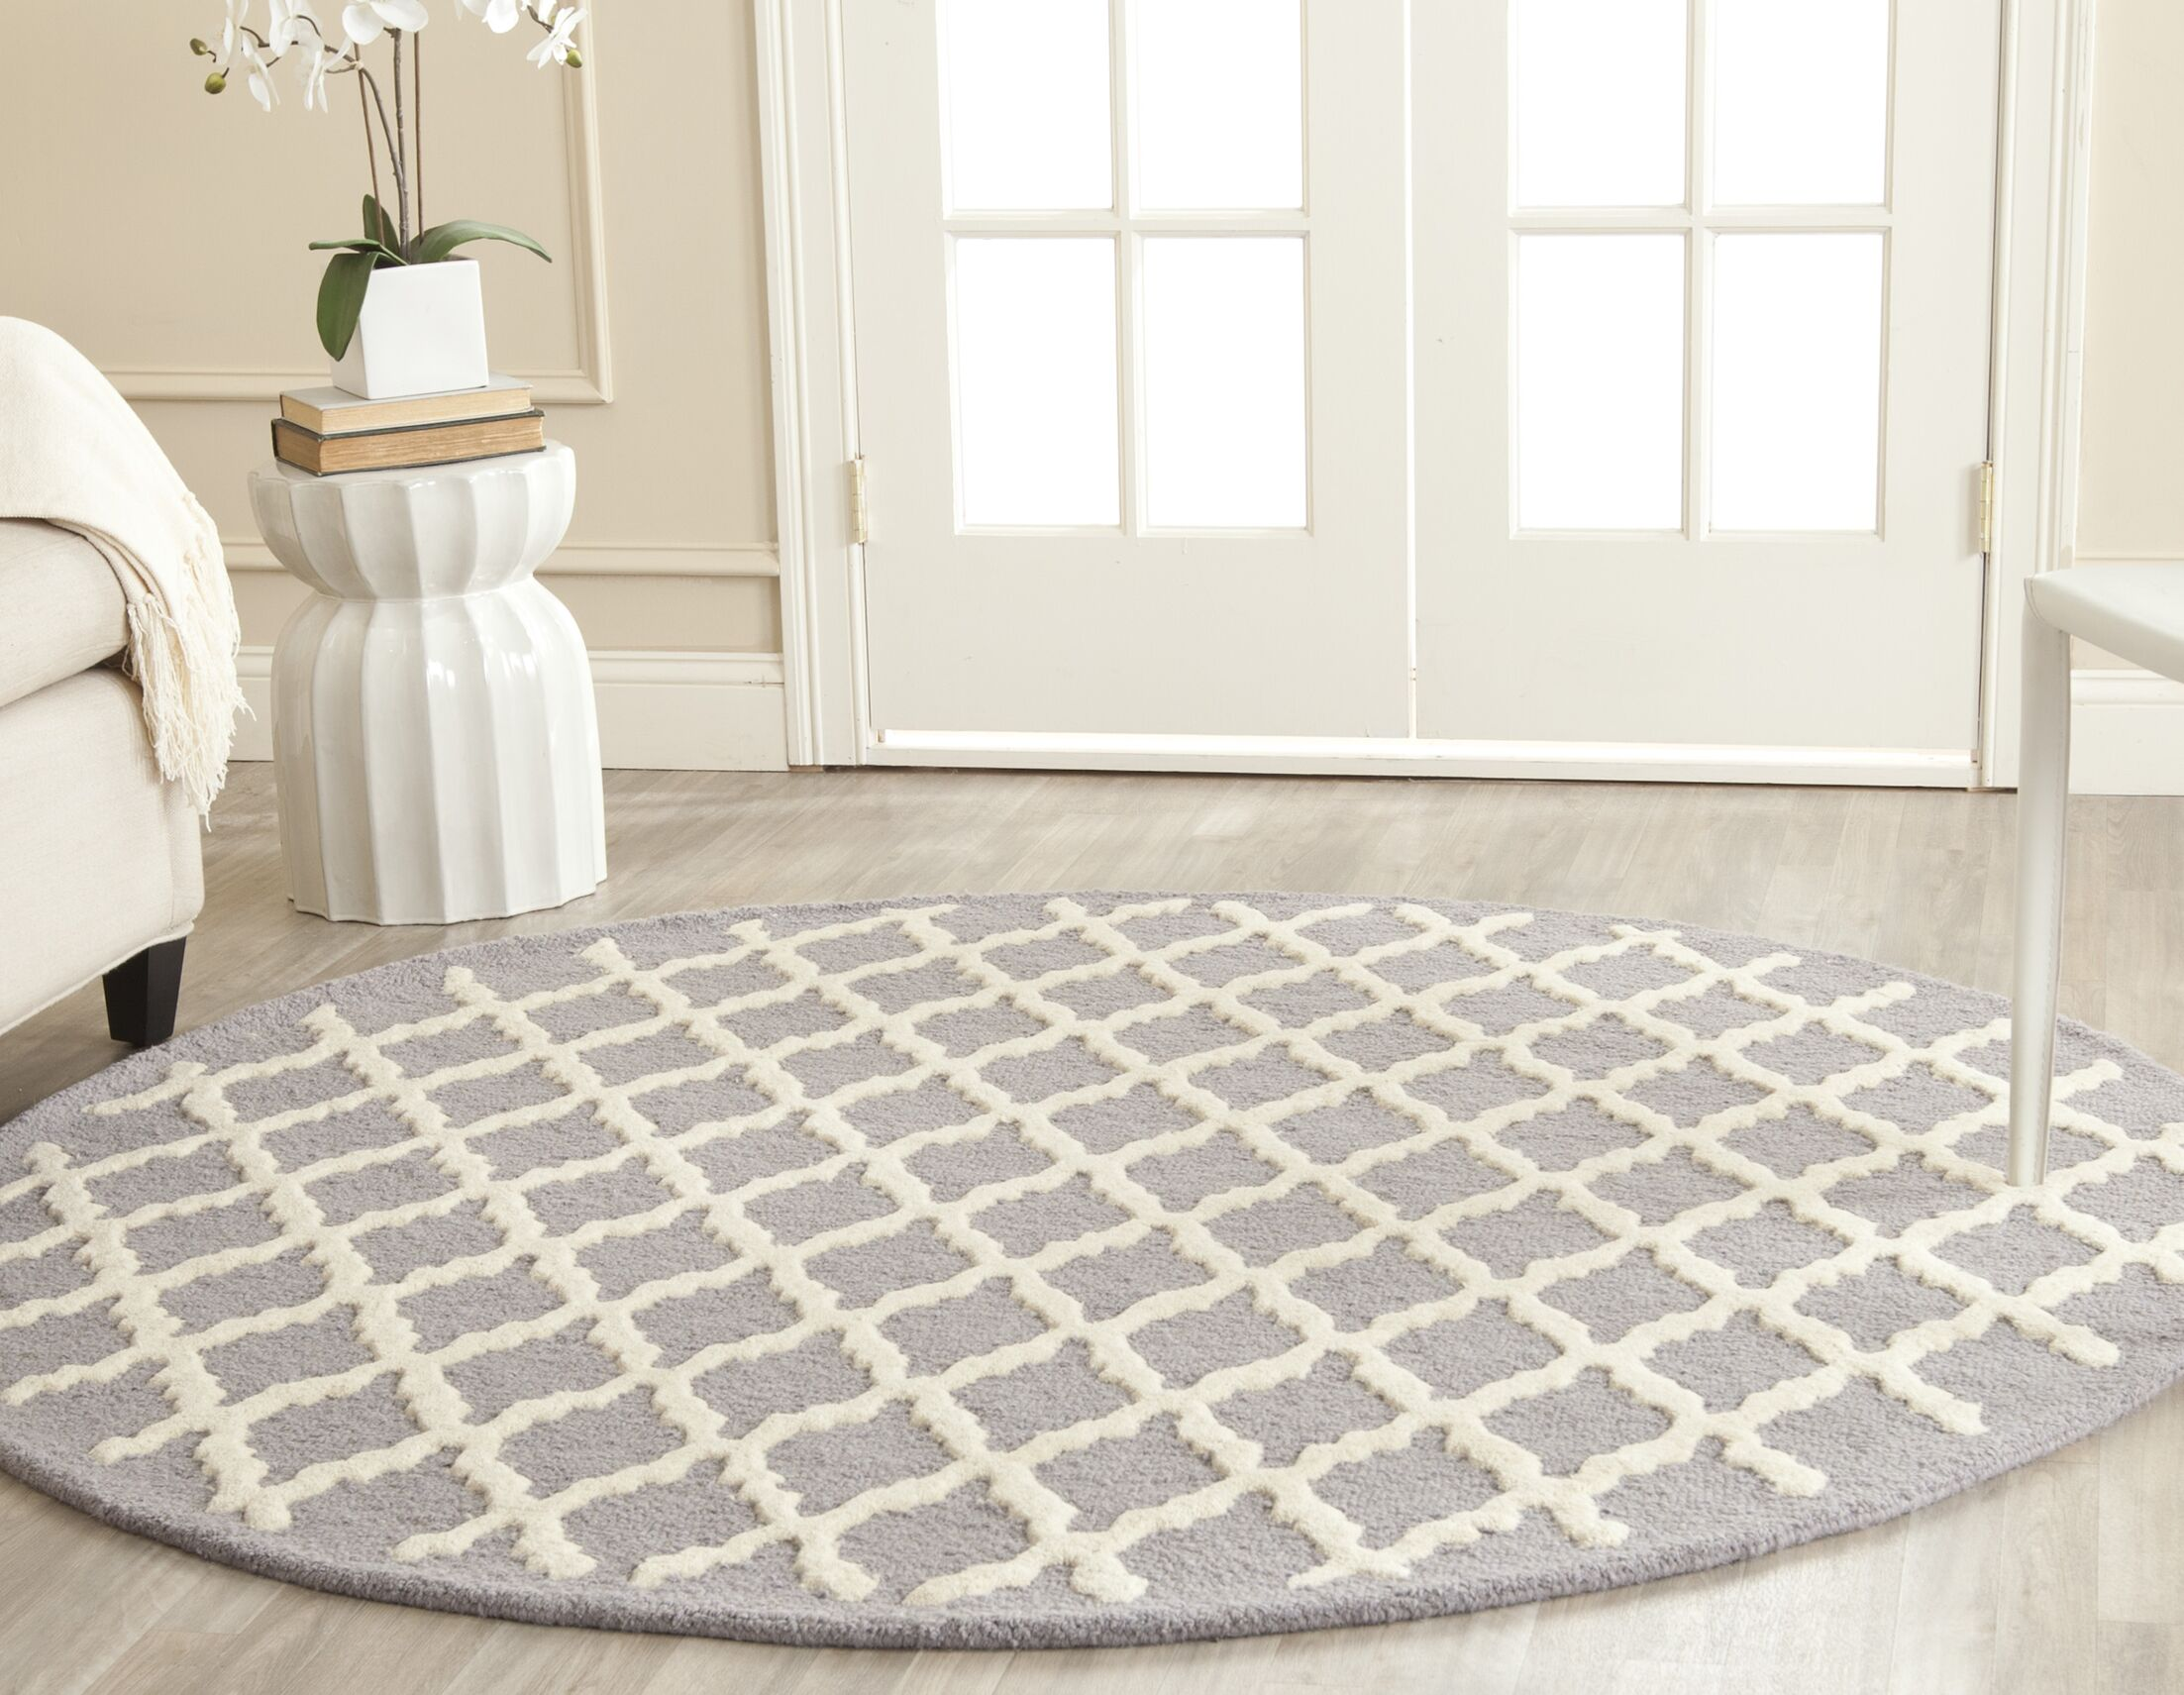 Charlenne Hand-Tufted Wool Silver/Ivory Area Rug Rug Size: Round 6'